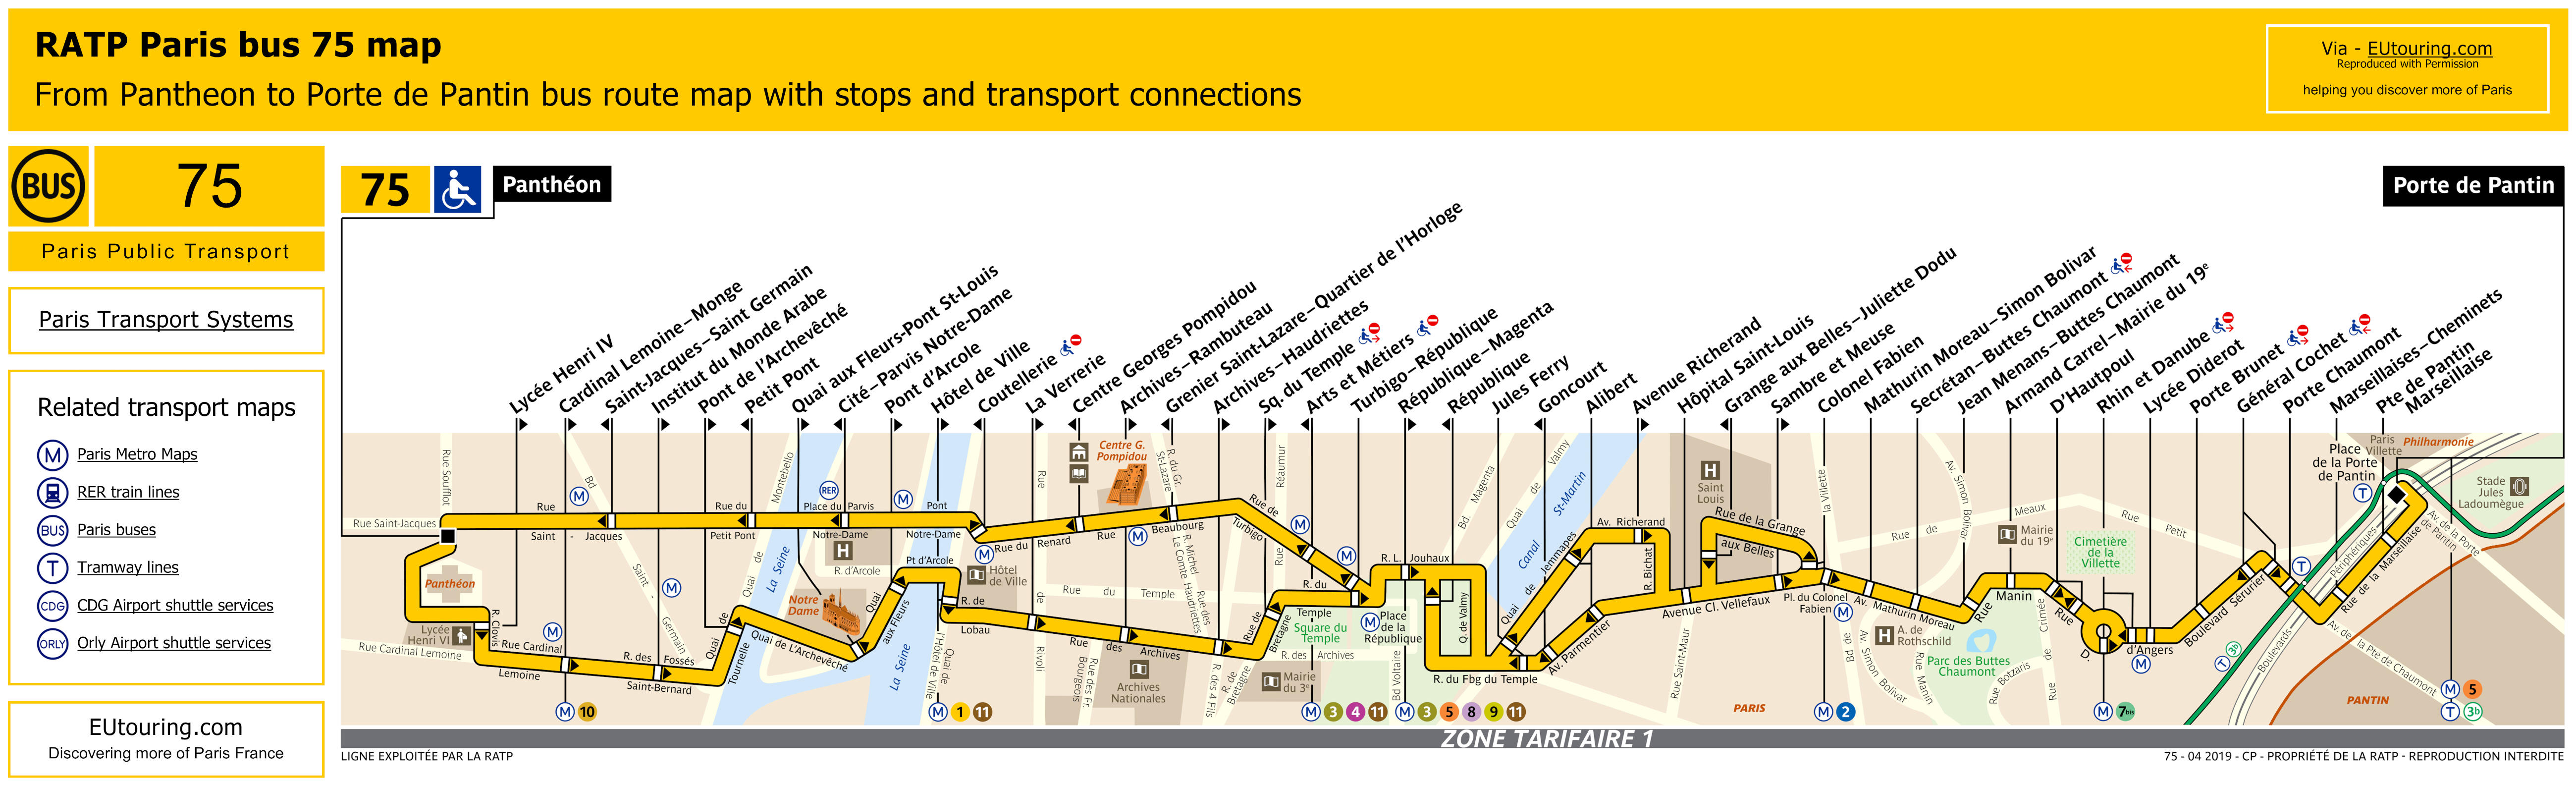 ratp route maps for paris bus lines 70 through to 79